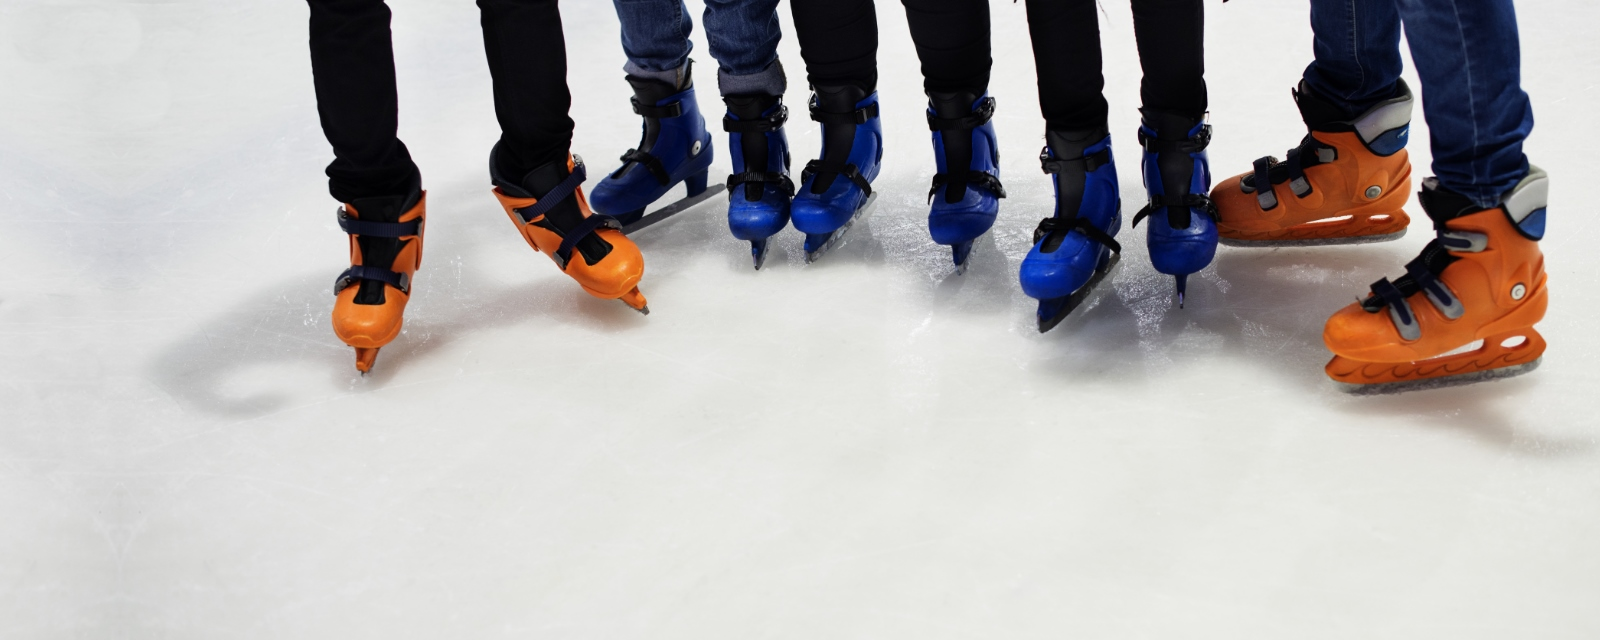 close-up images of skaters on ice with colourful skates